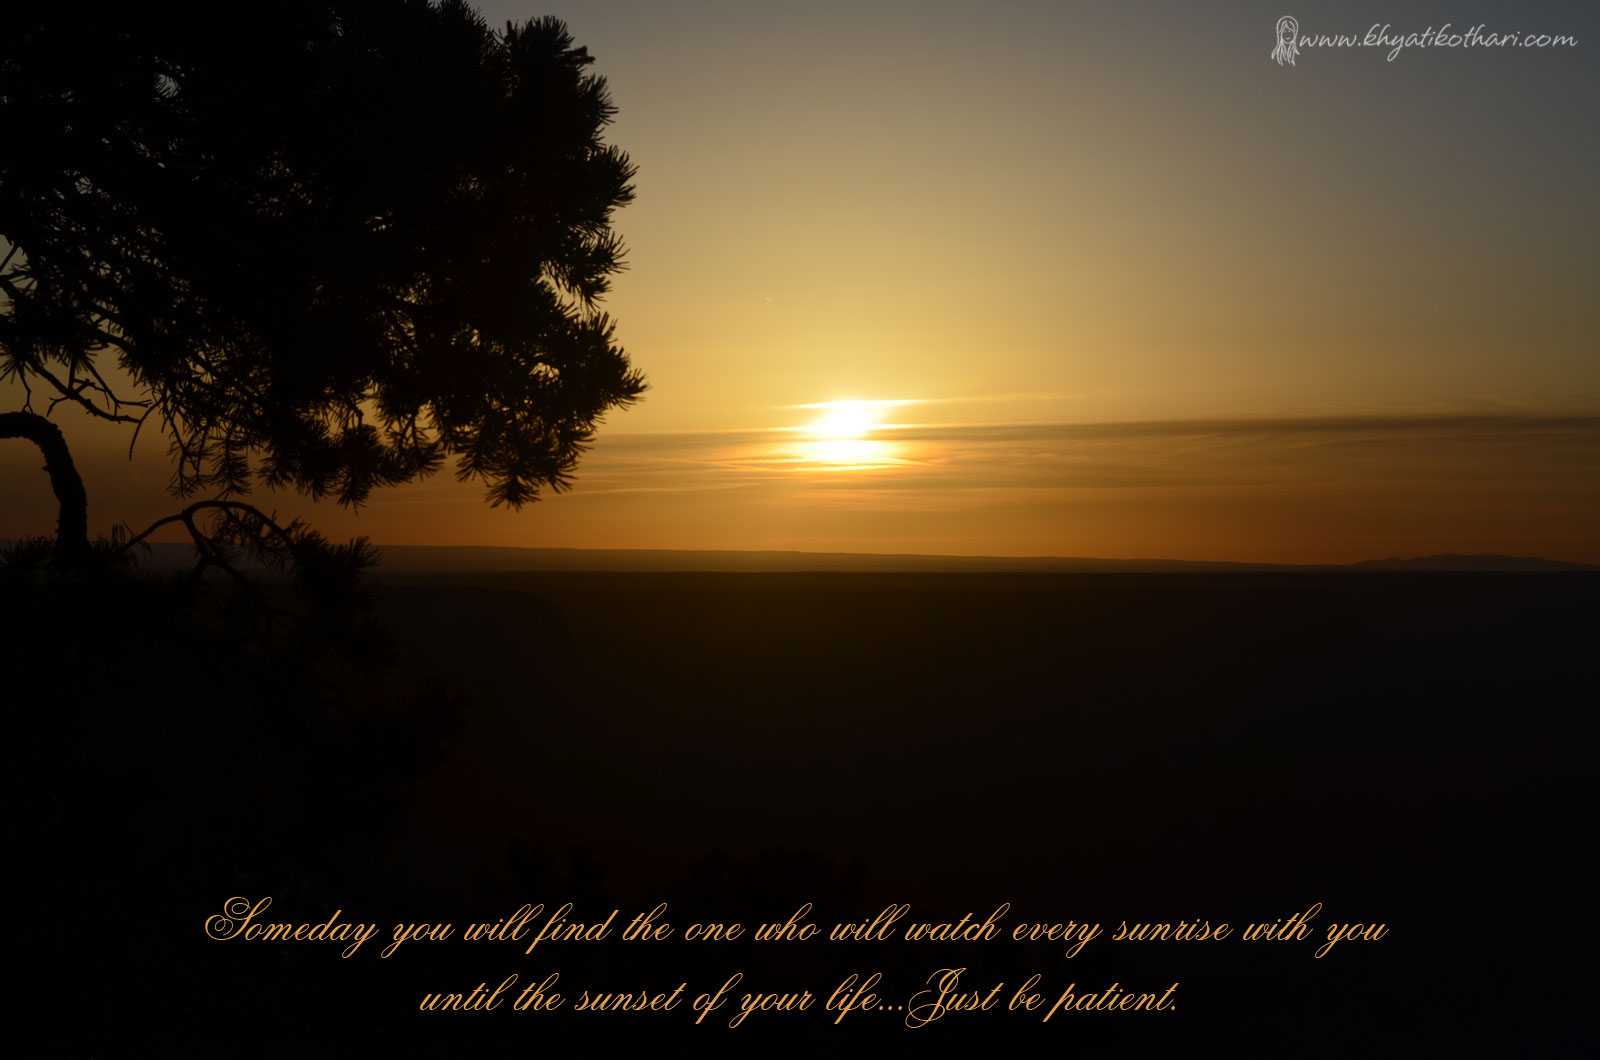 Sunrise Quotes. QuotesGram